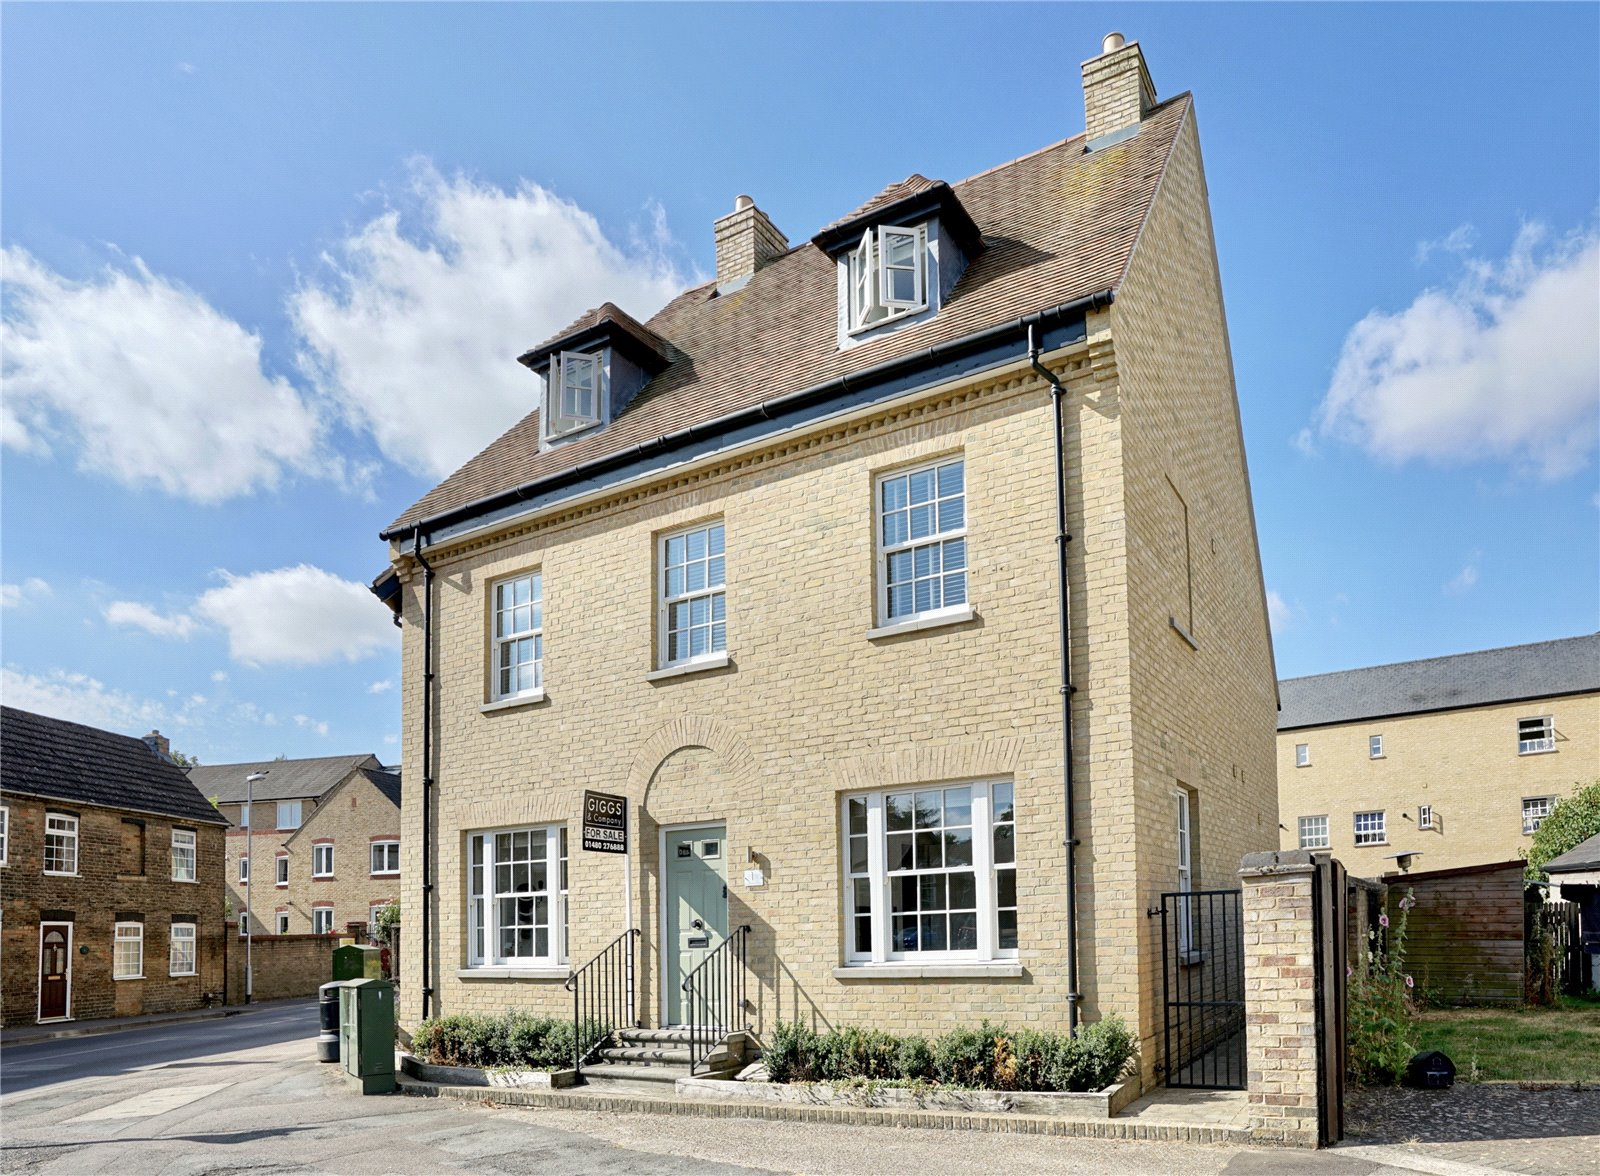 4 bed house for sale in Steam Flour Mill, Church Street - Property Image 1